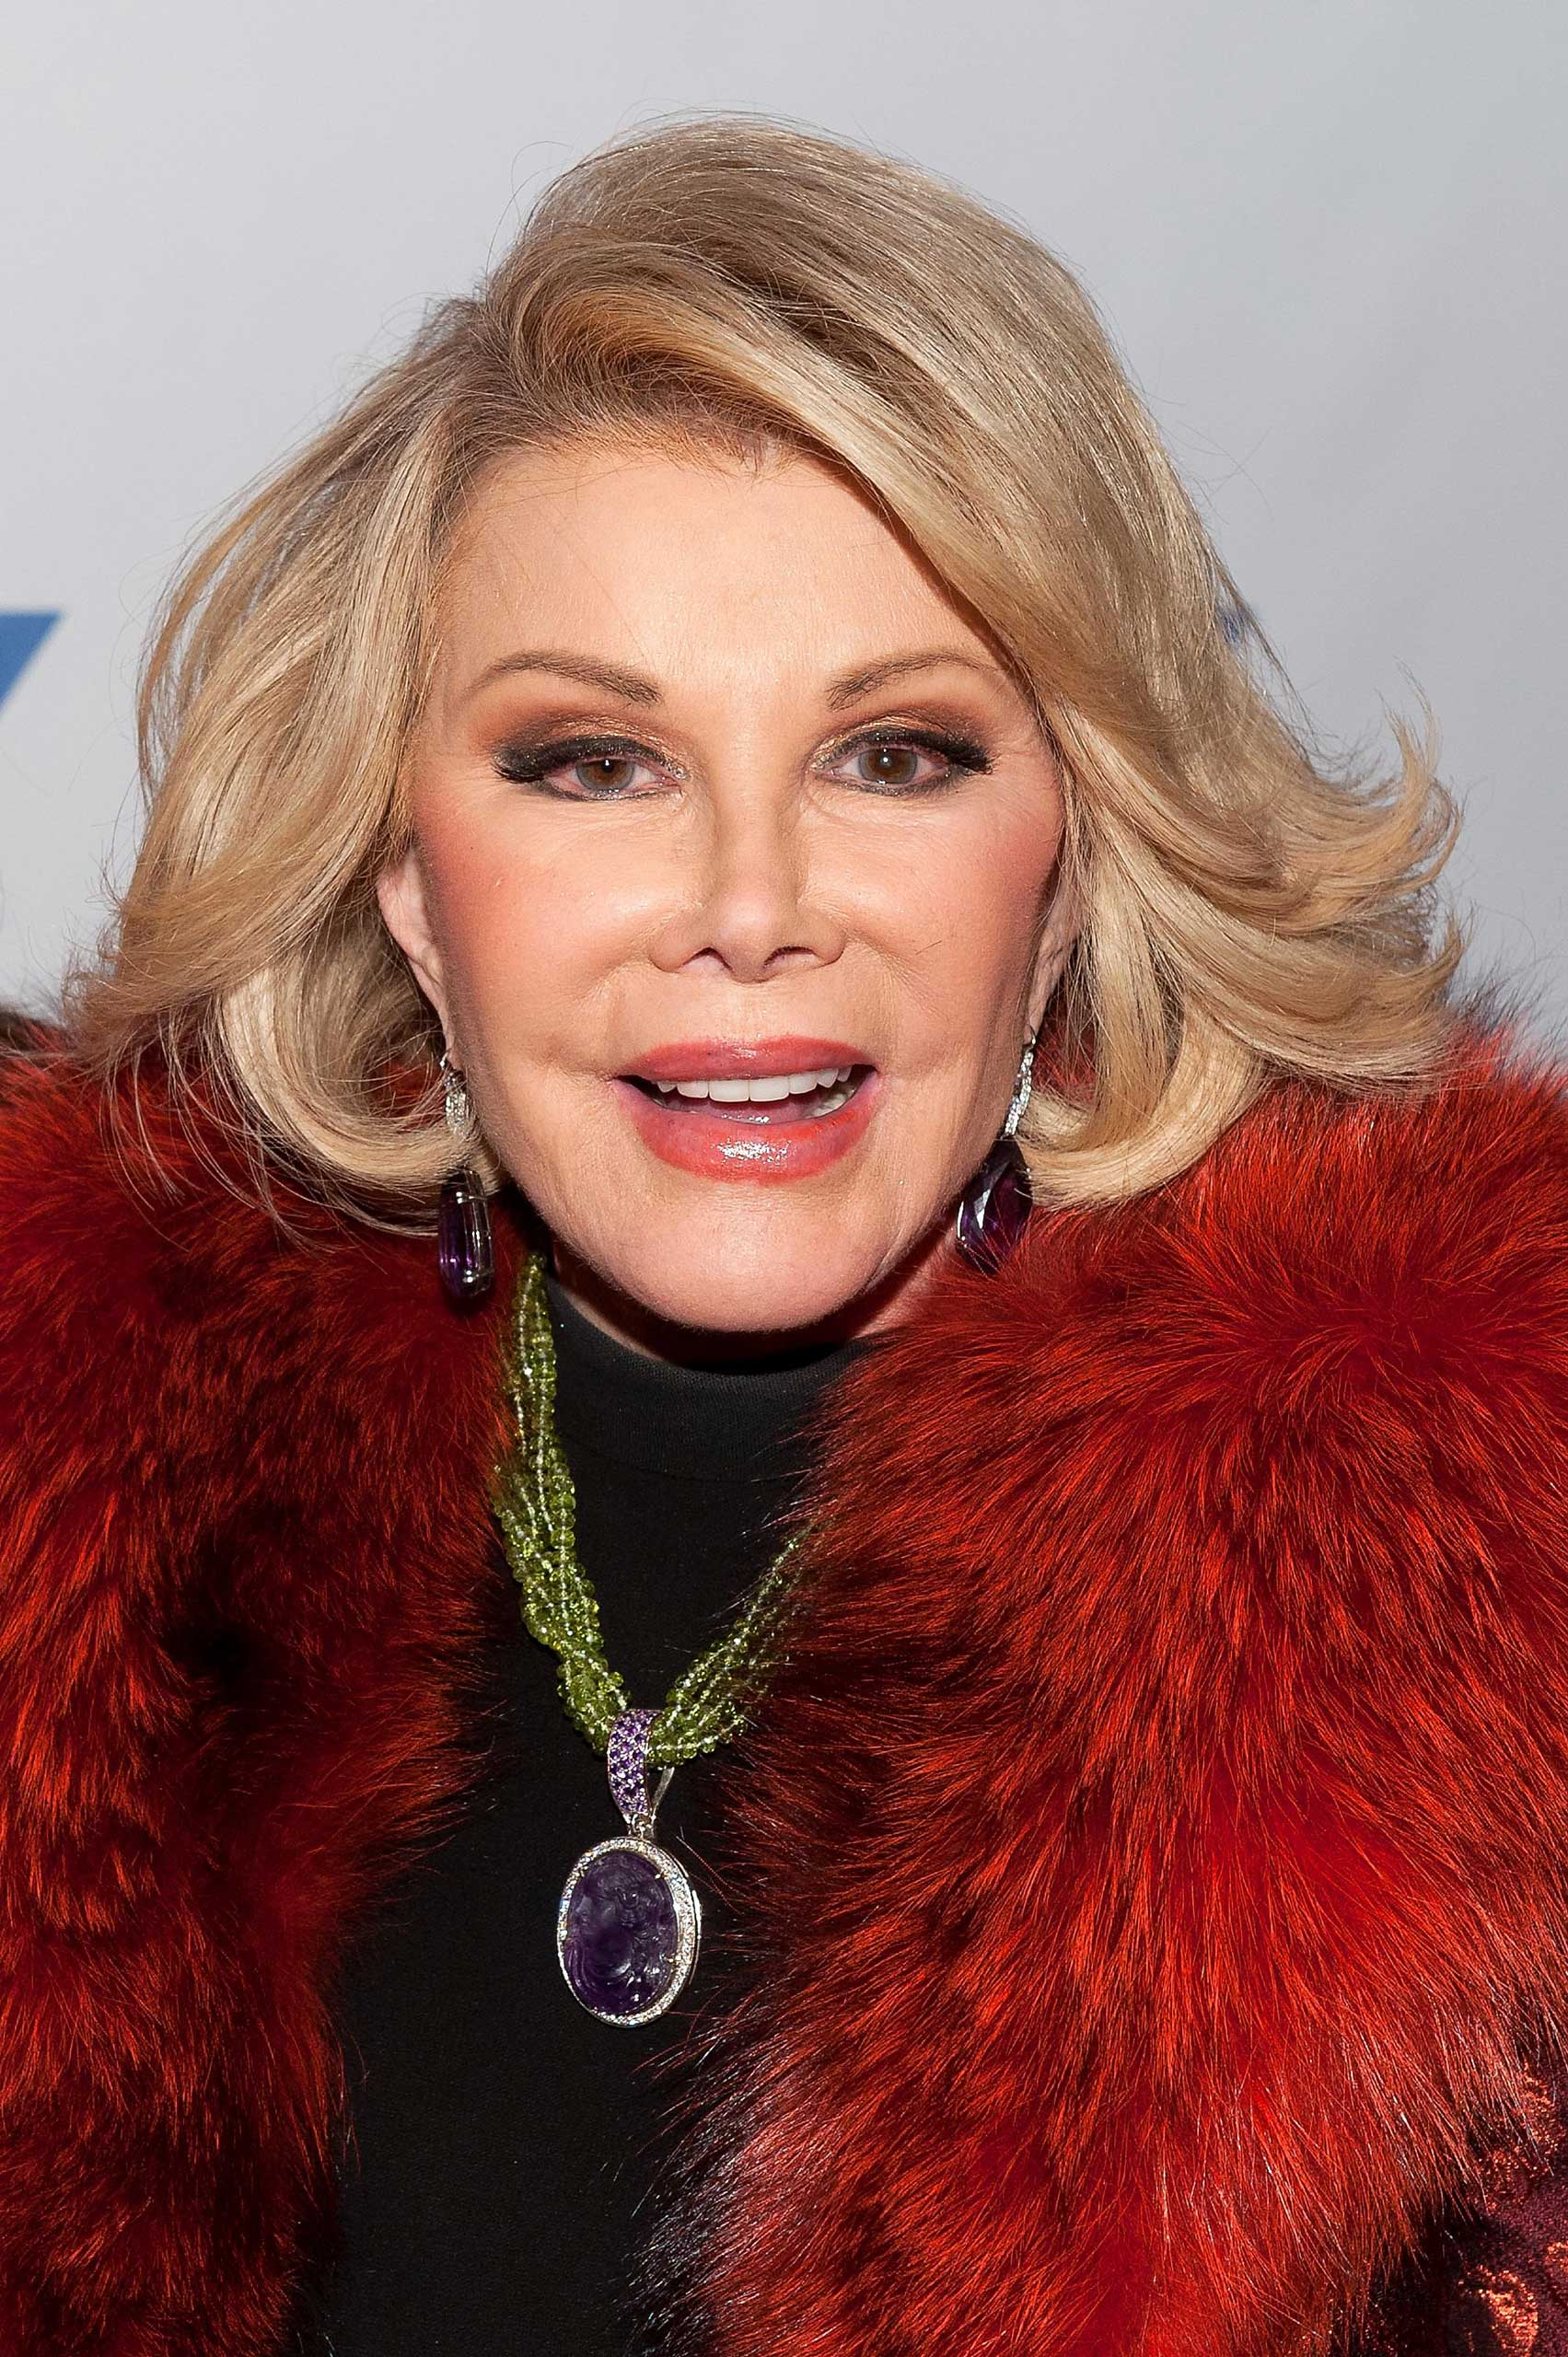 The late Joan Rivers on Jan. 22, 2014 in New York City.